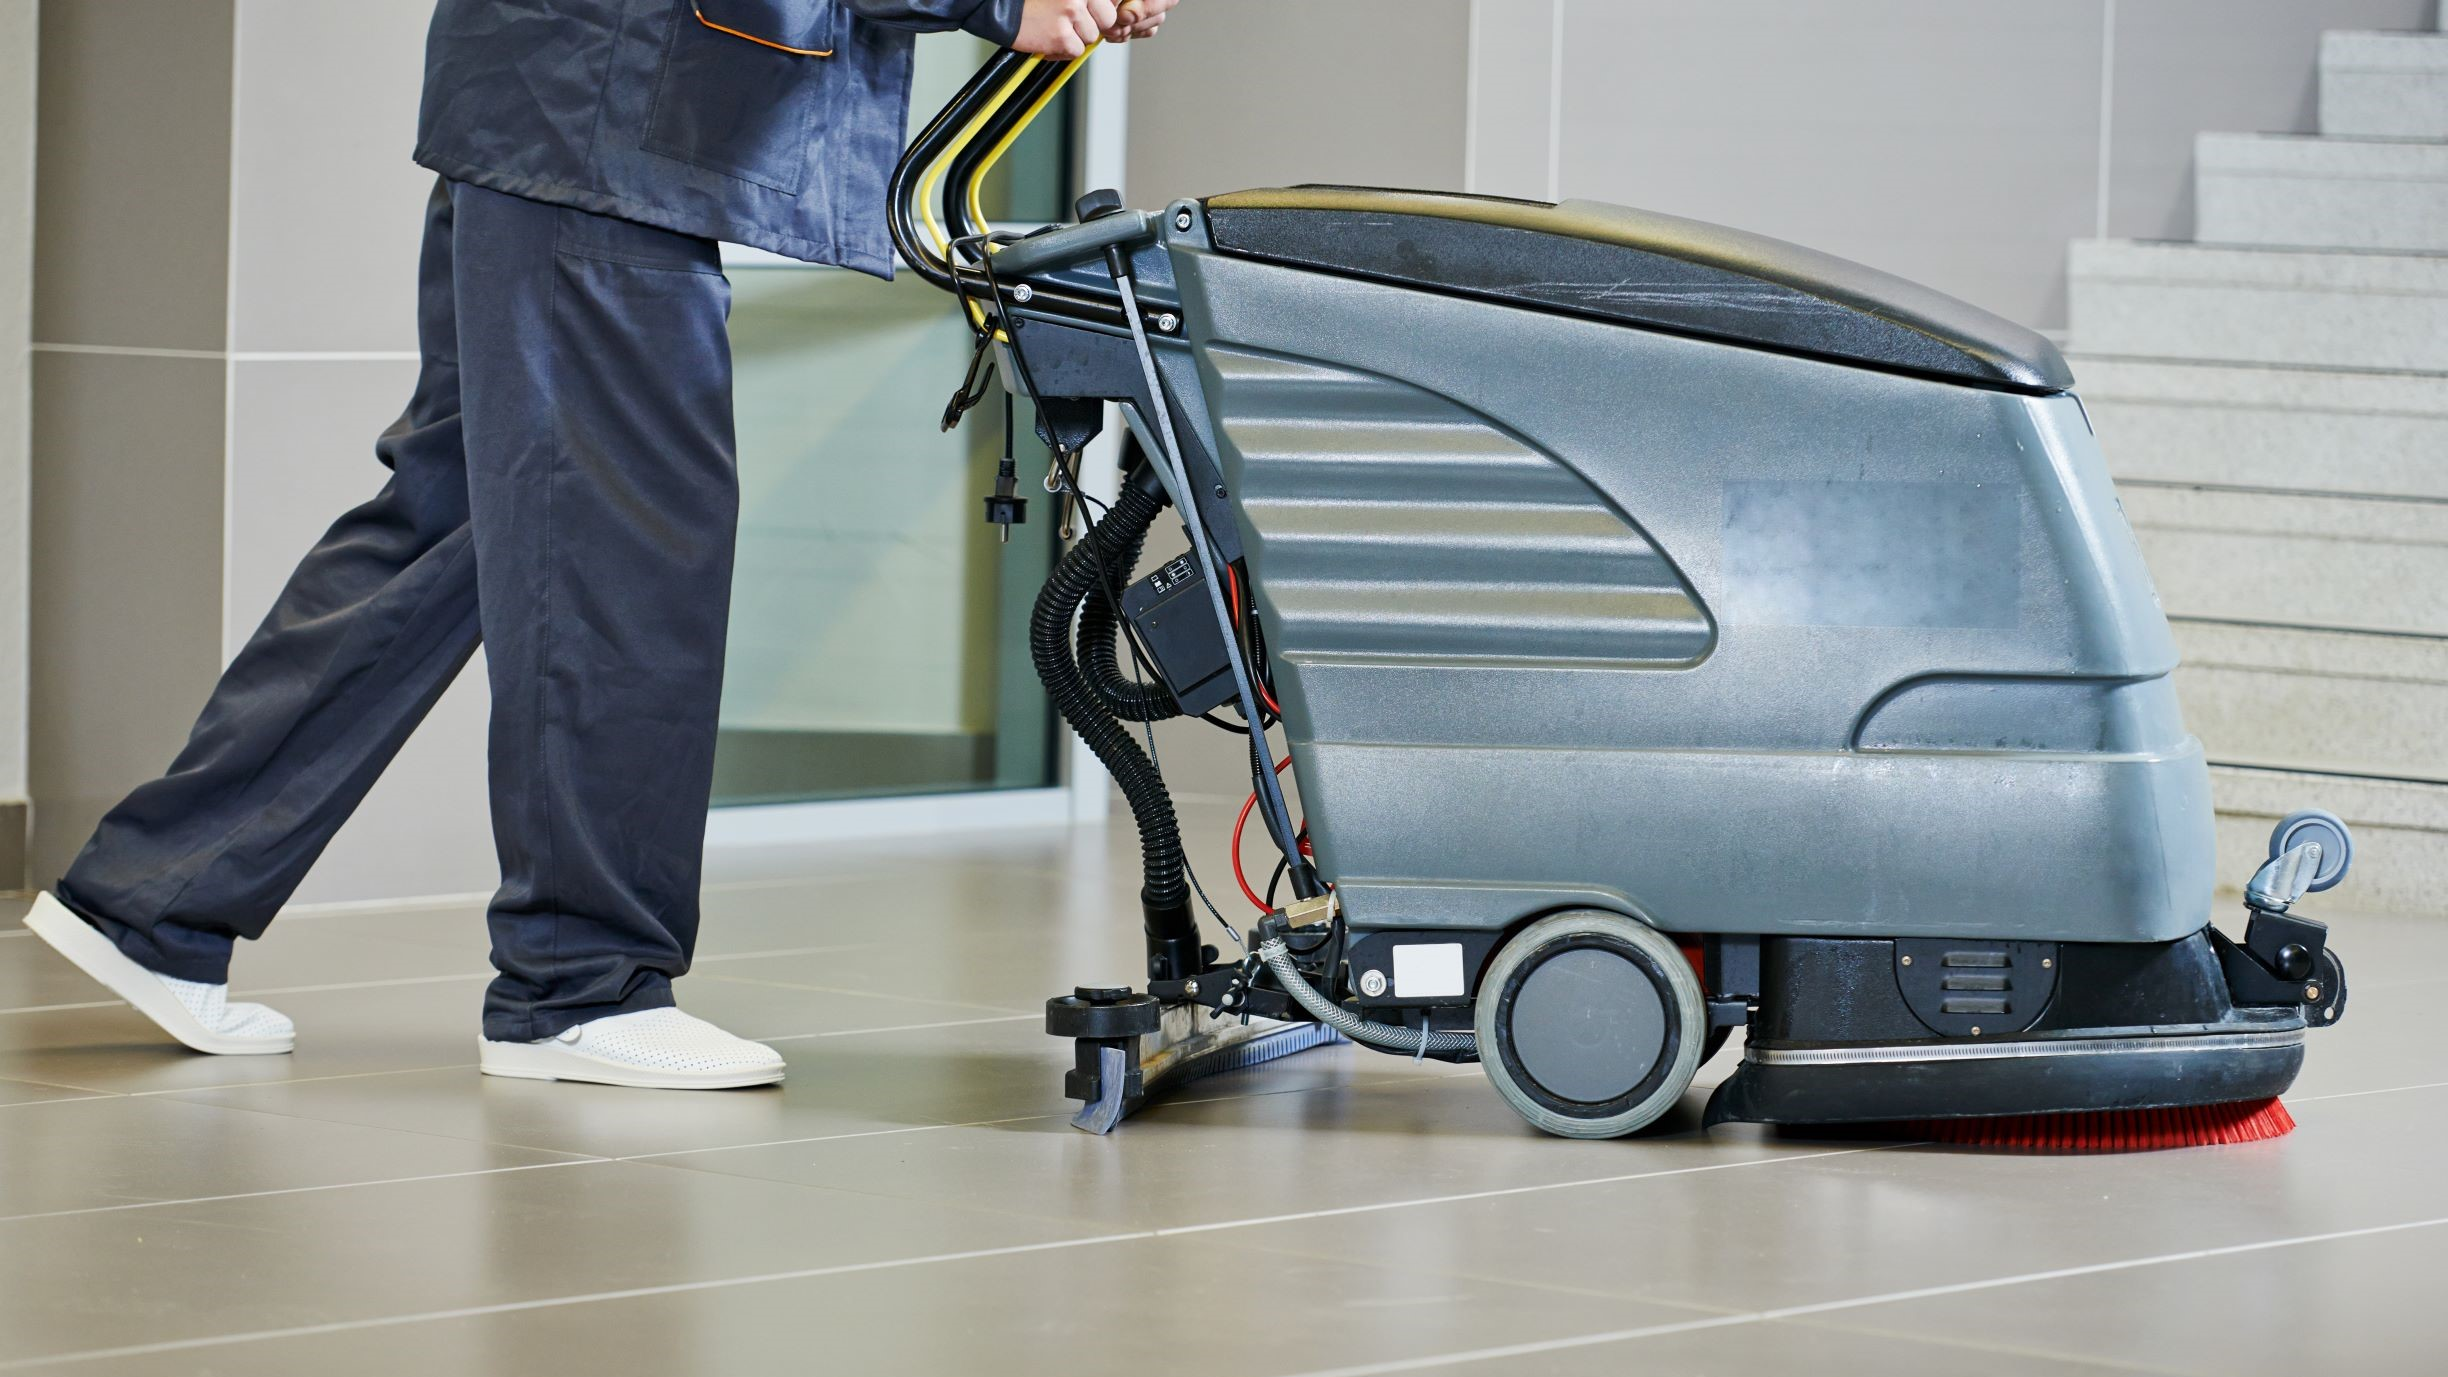 How to Care for Your Industrial Floor Cleaning Machines